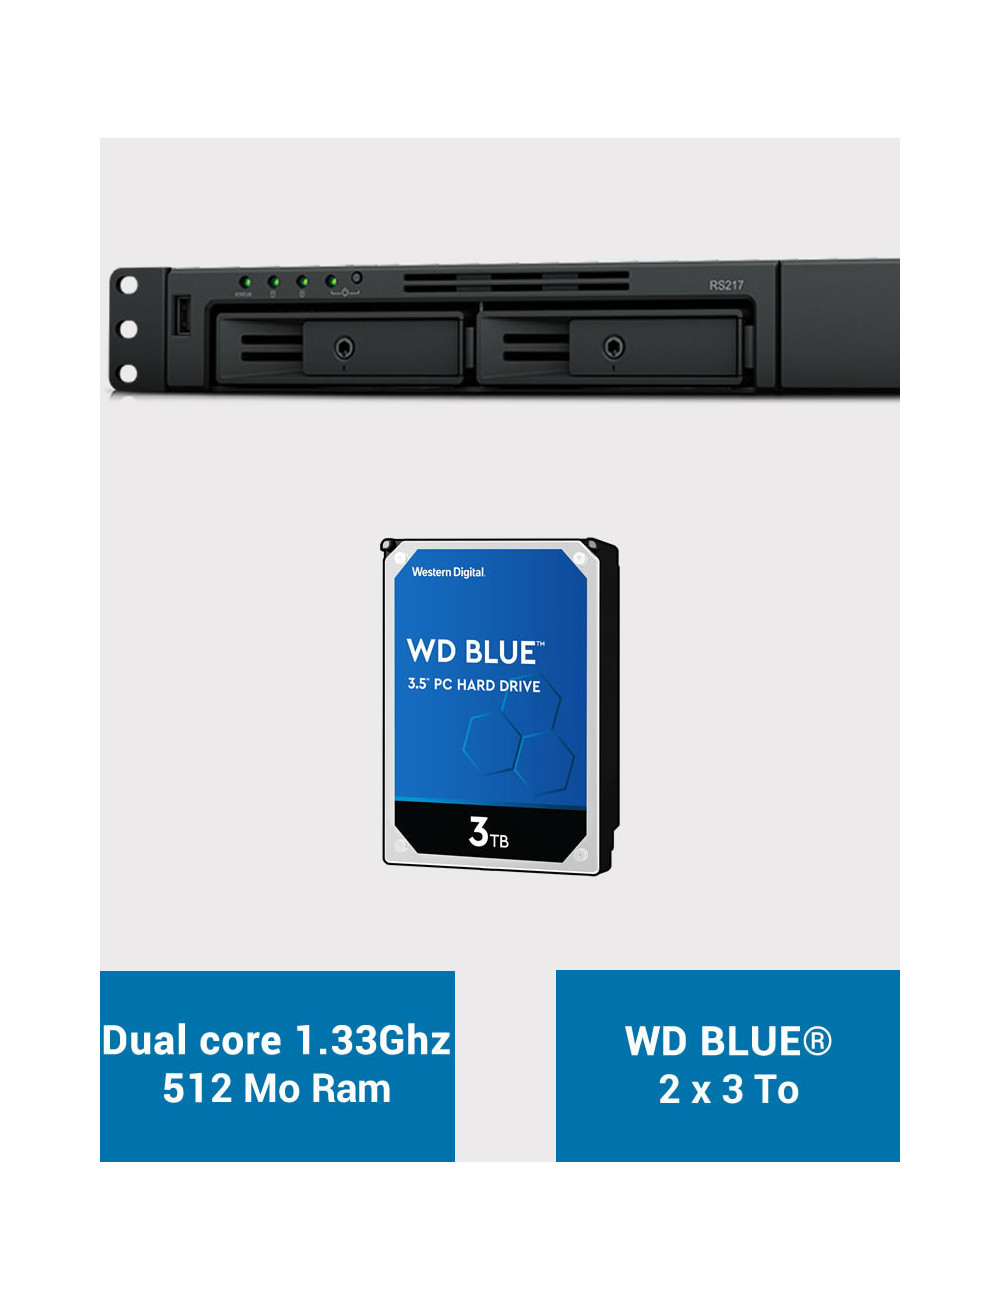 Synology RS217 Serveur NAS WD BLUE 6To (2x3To)